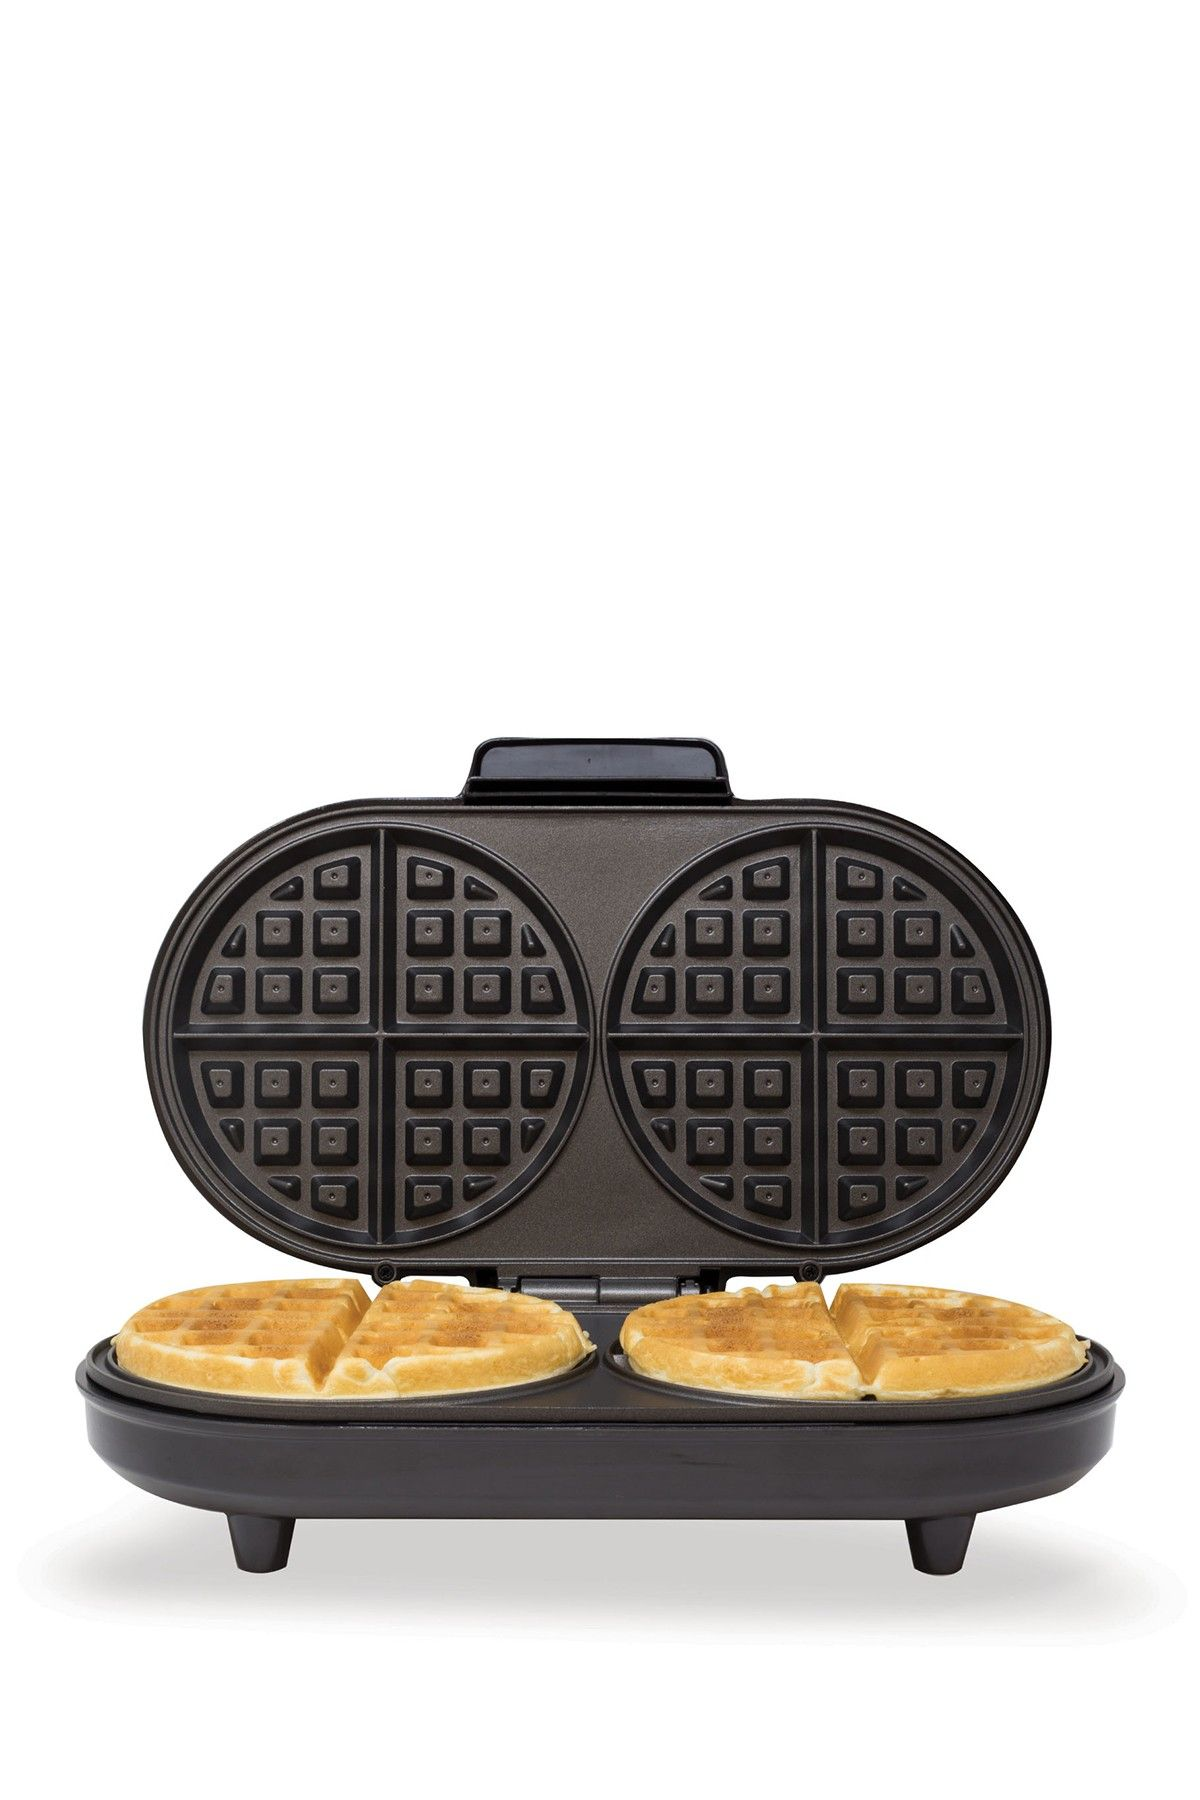 Kalorik Black And Stainless Steel Double Belgian Waffle Maker Hautelook Double Belgian Waffle Maker Waffles Maker Belgian Waffle Maker